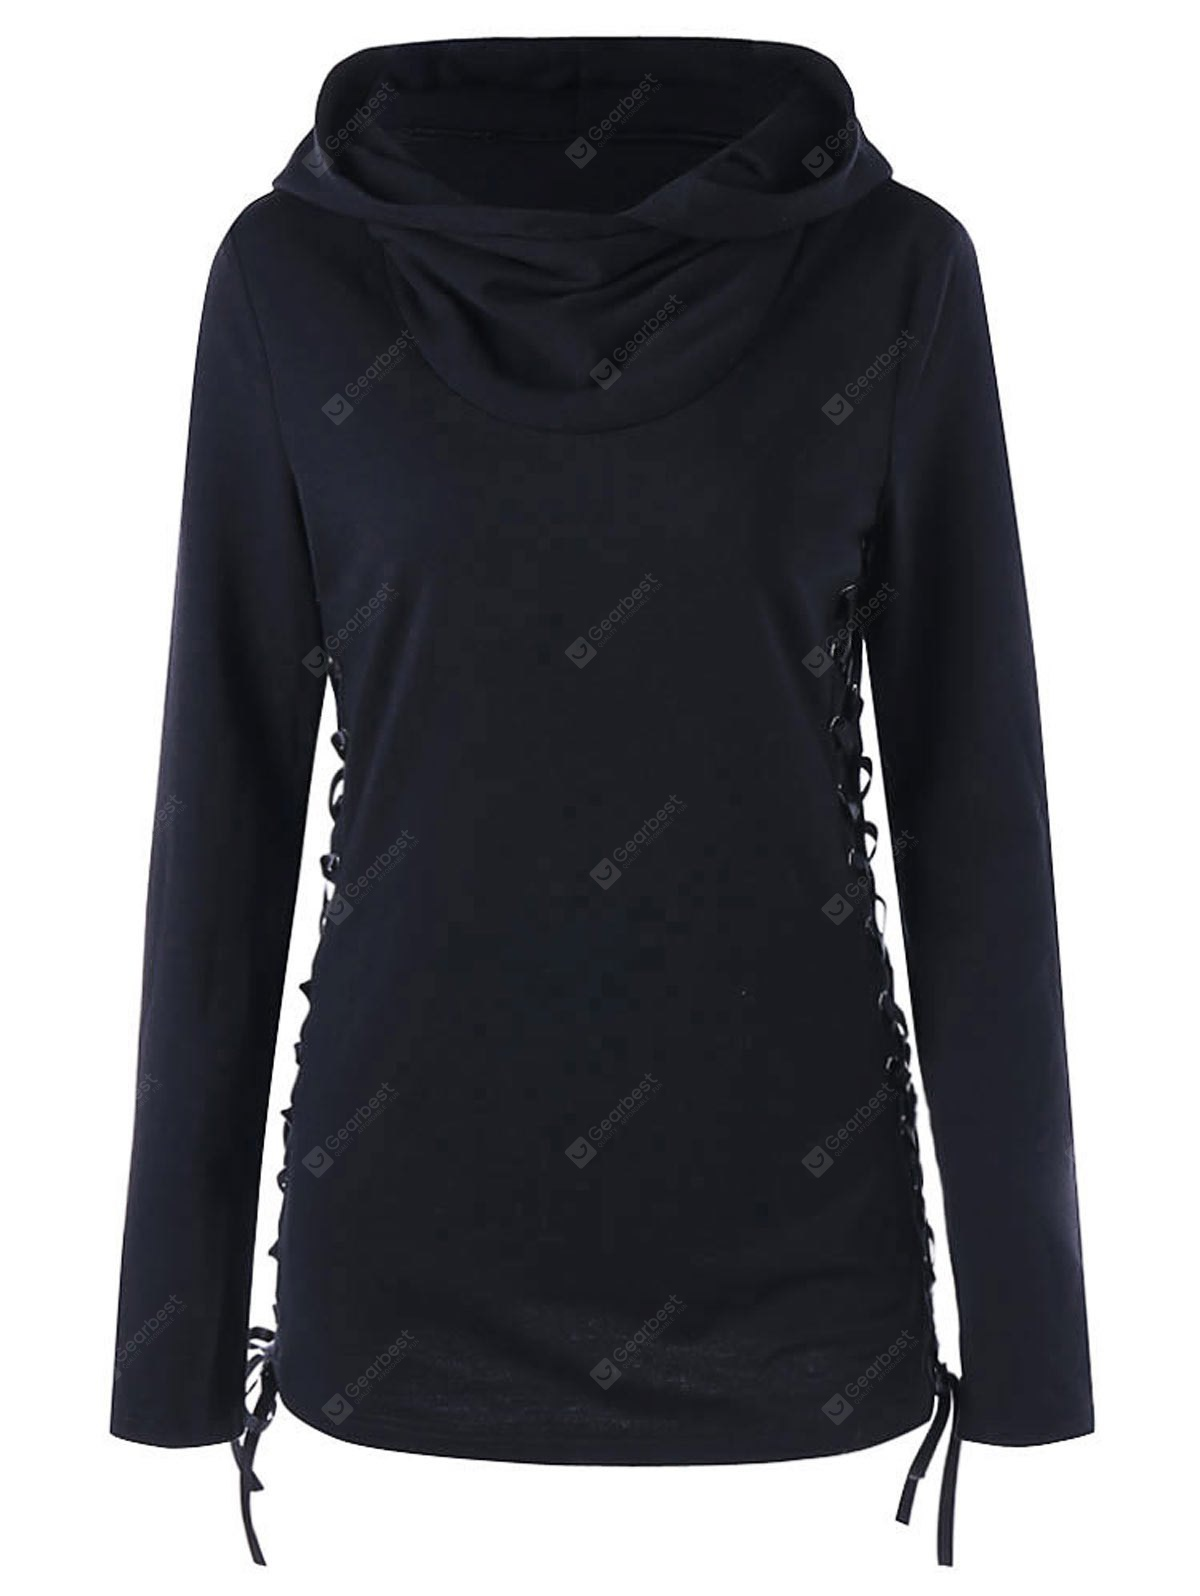 Hoodie with Criss Cross Lace Up